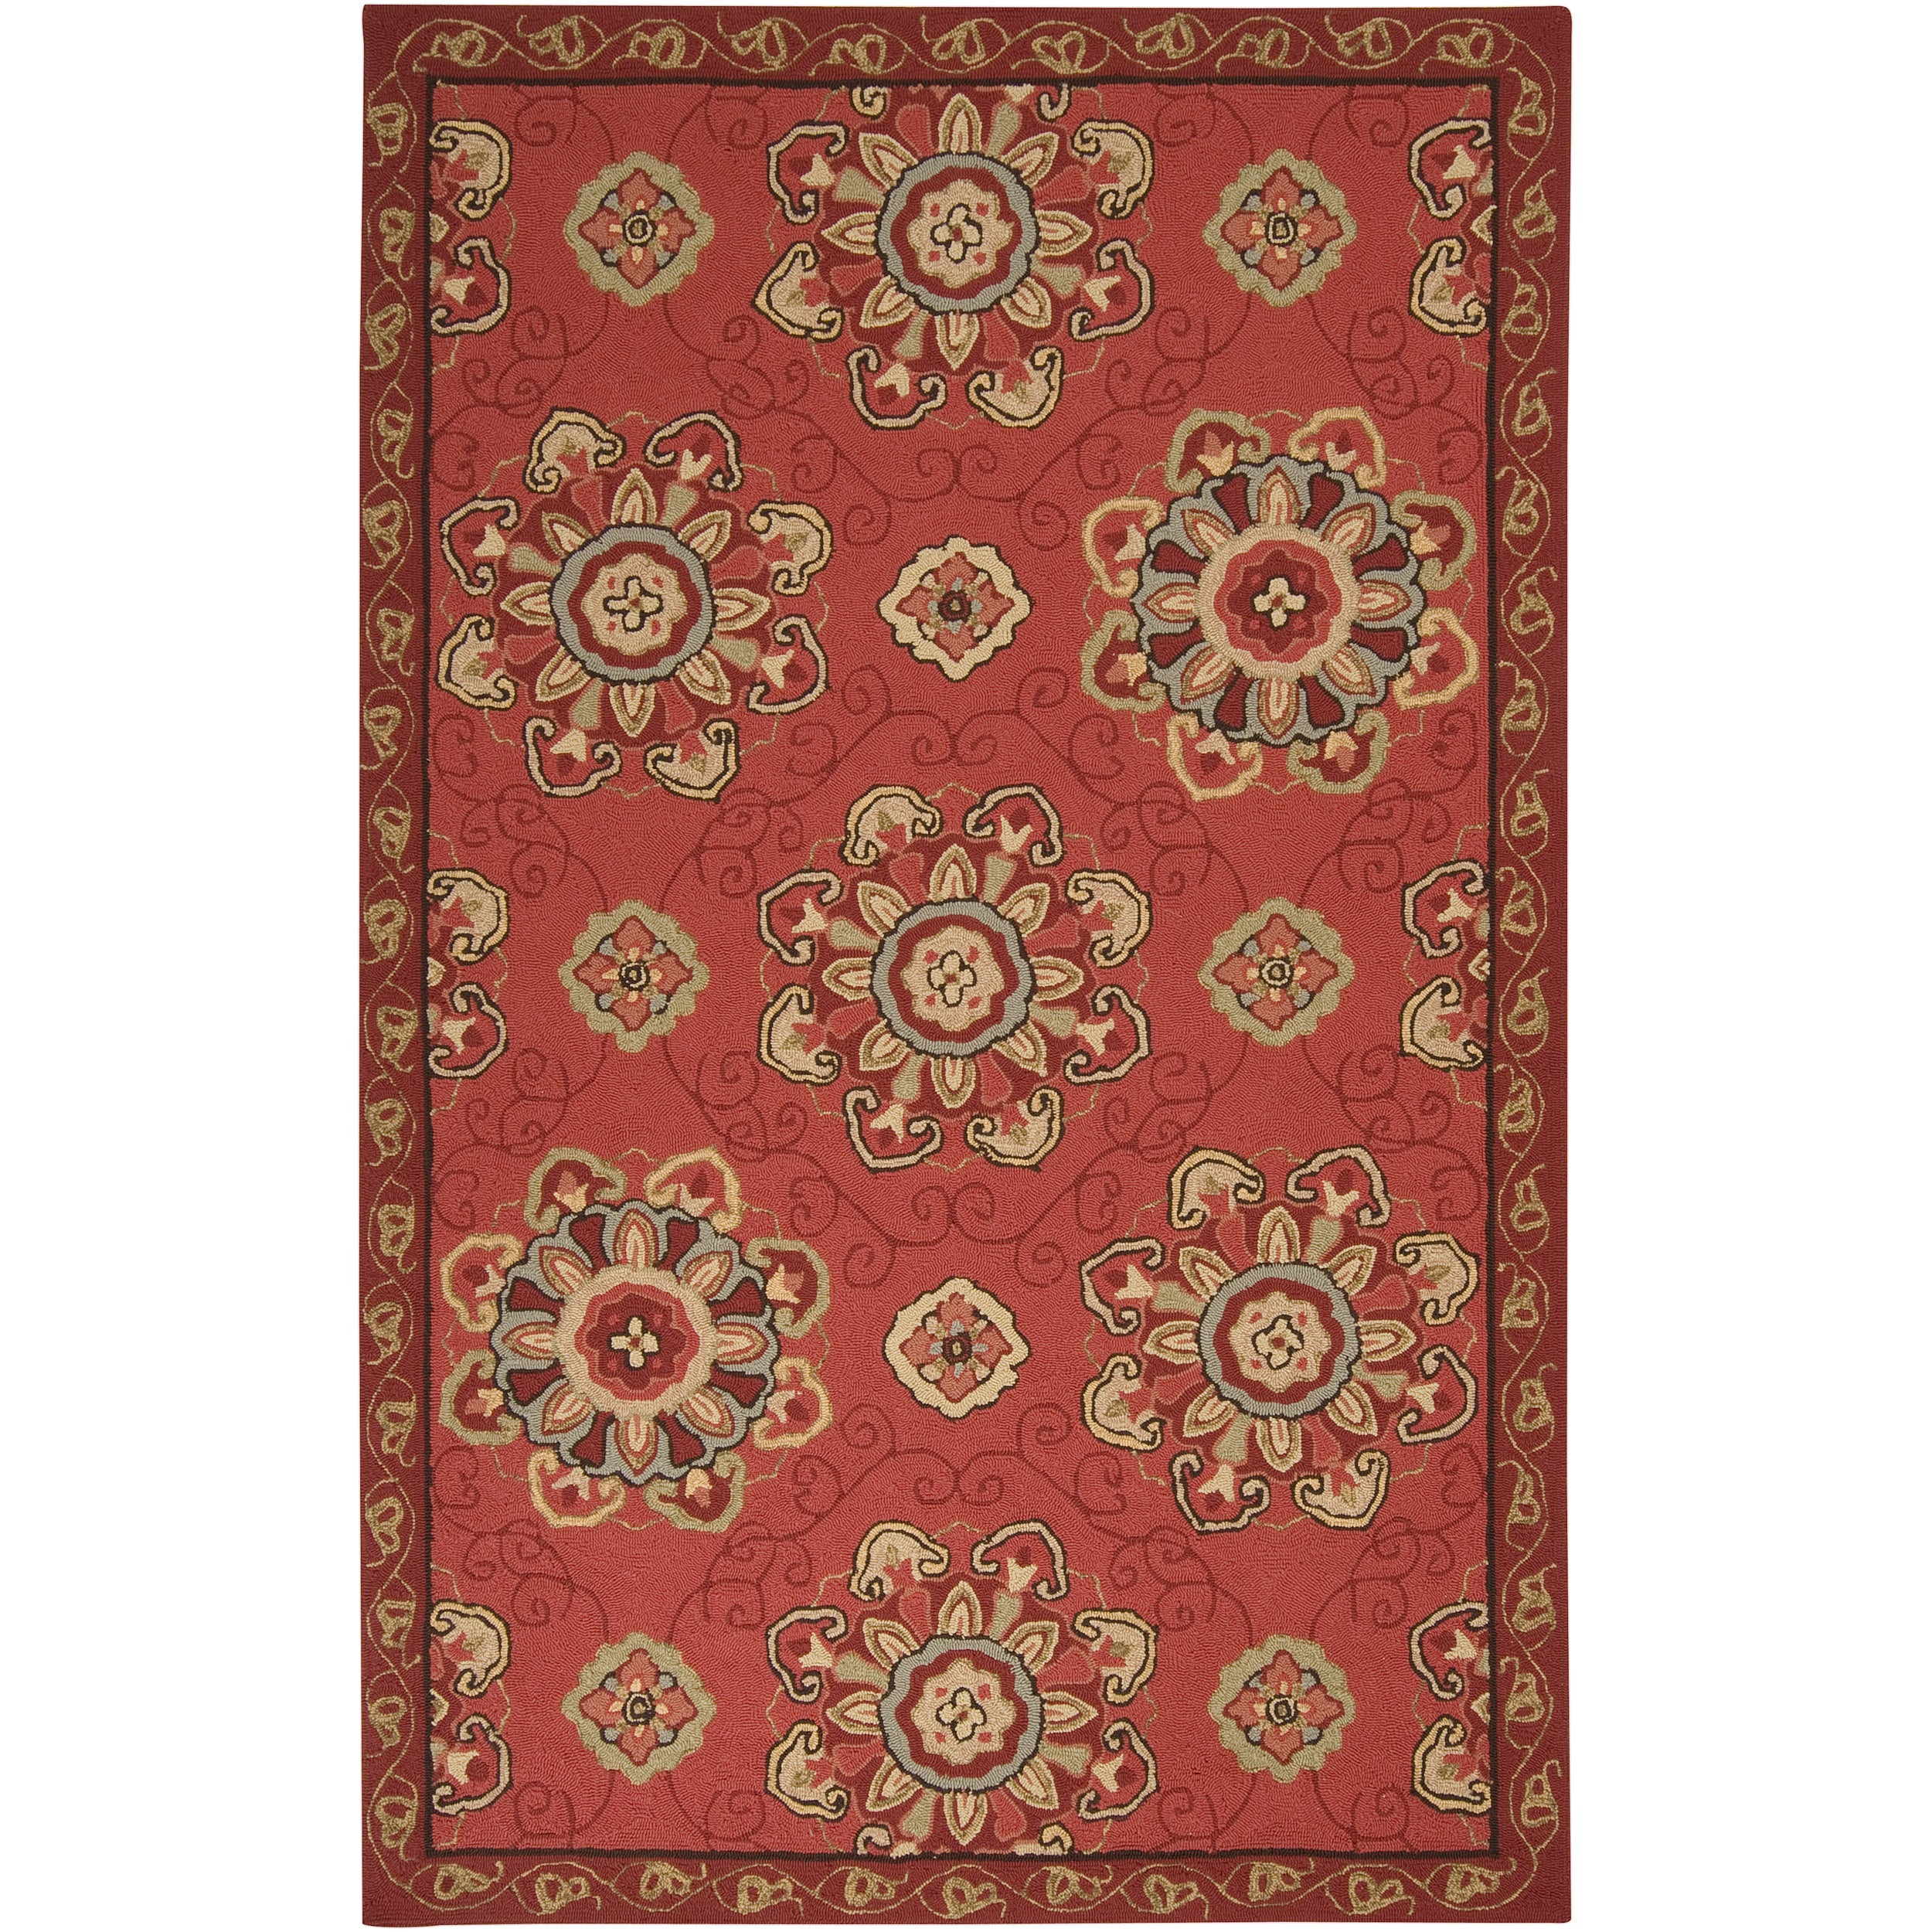 Hand-hooked Lynndyl Indoor/Outdoor Medallion Rug (5' x 8')